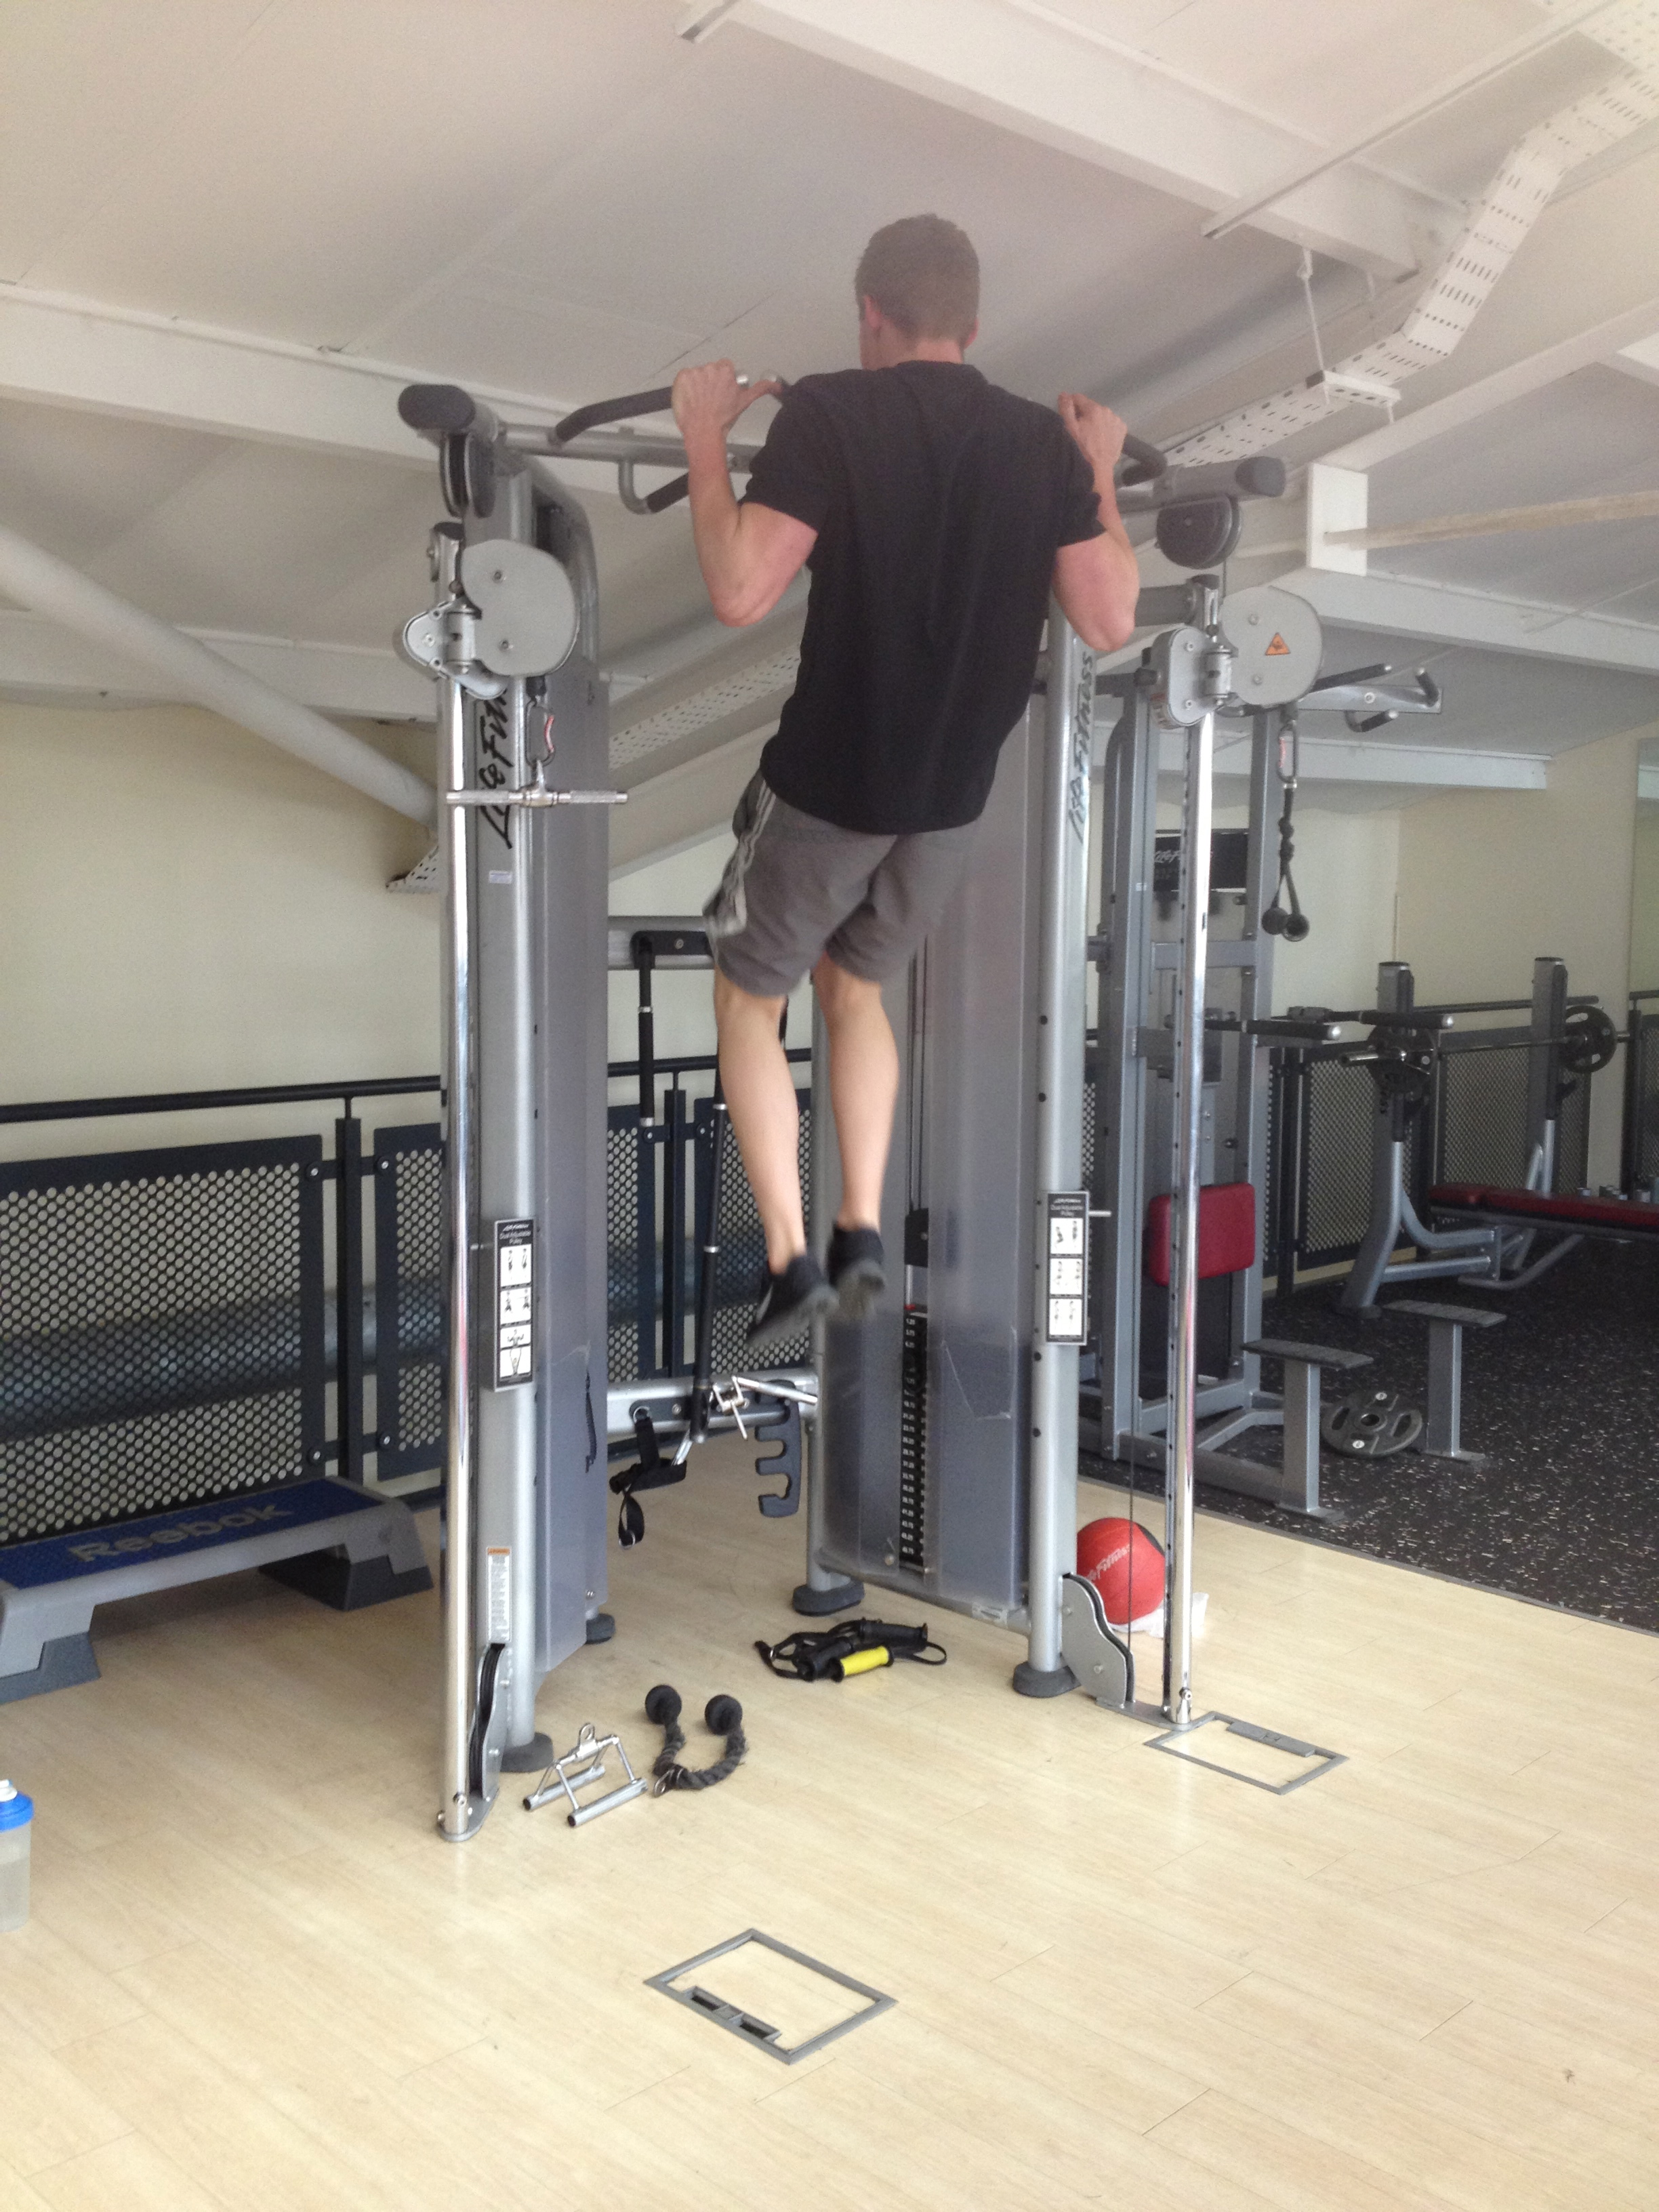 20 minutes to fitness, chin ups, pull ups, high intensity circuit training